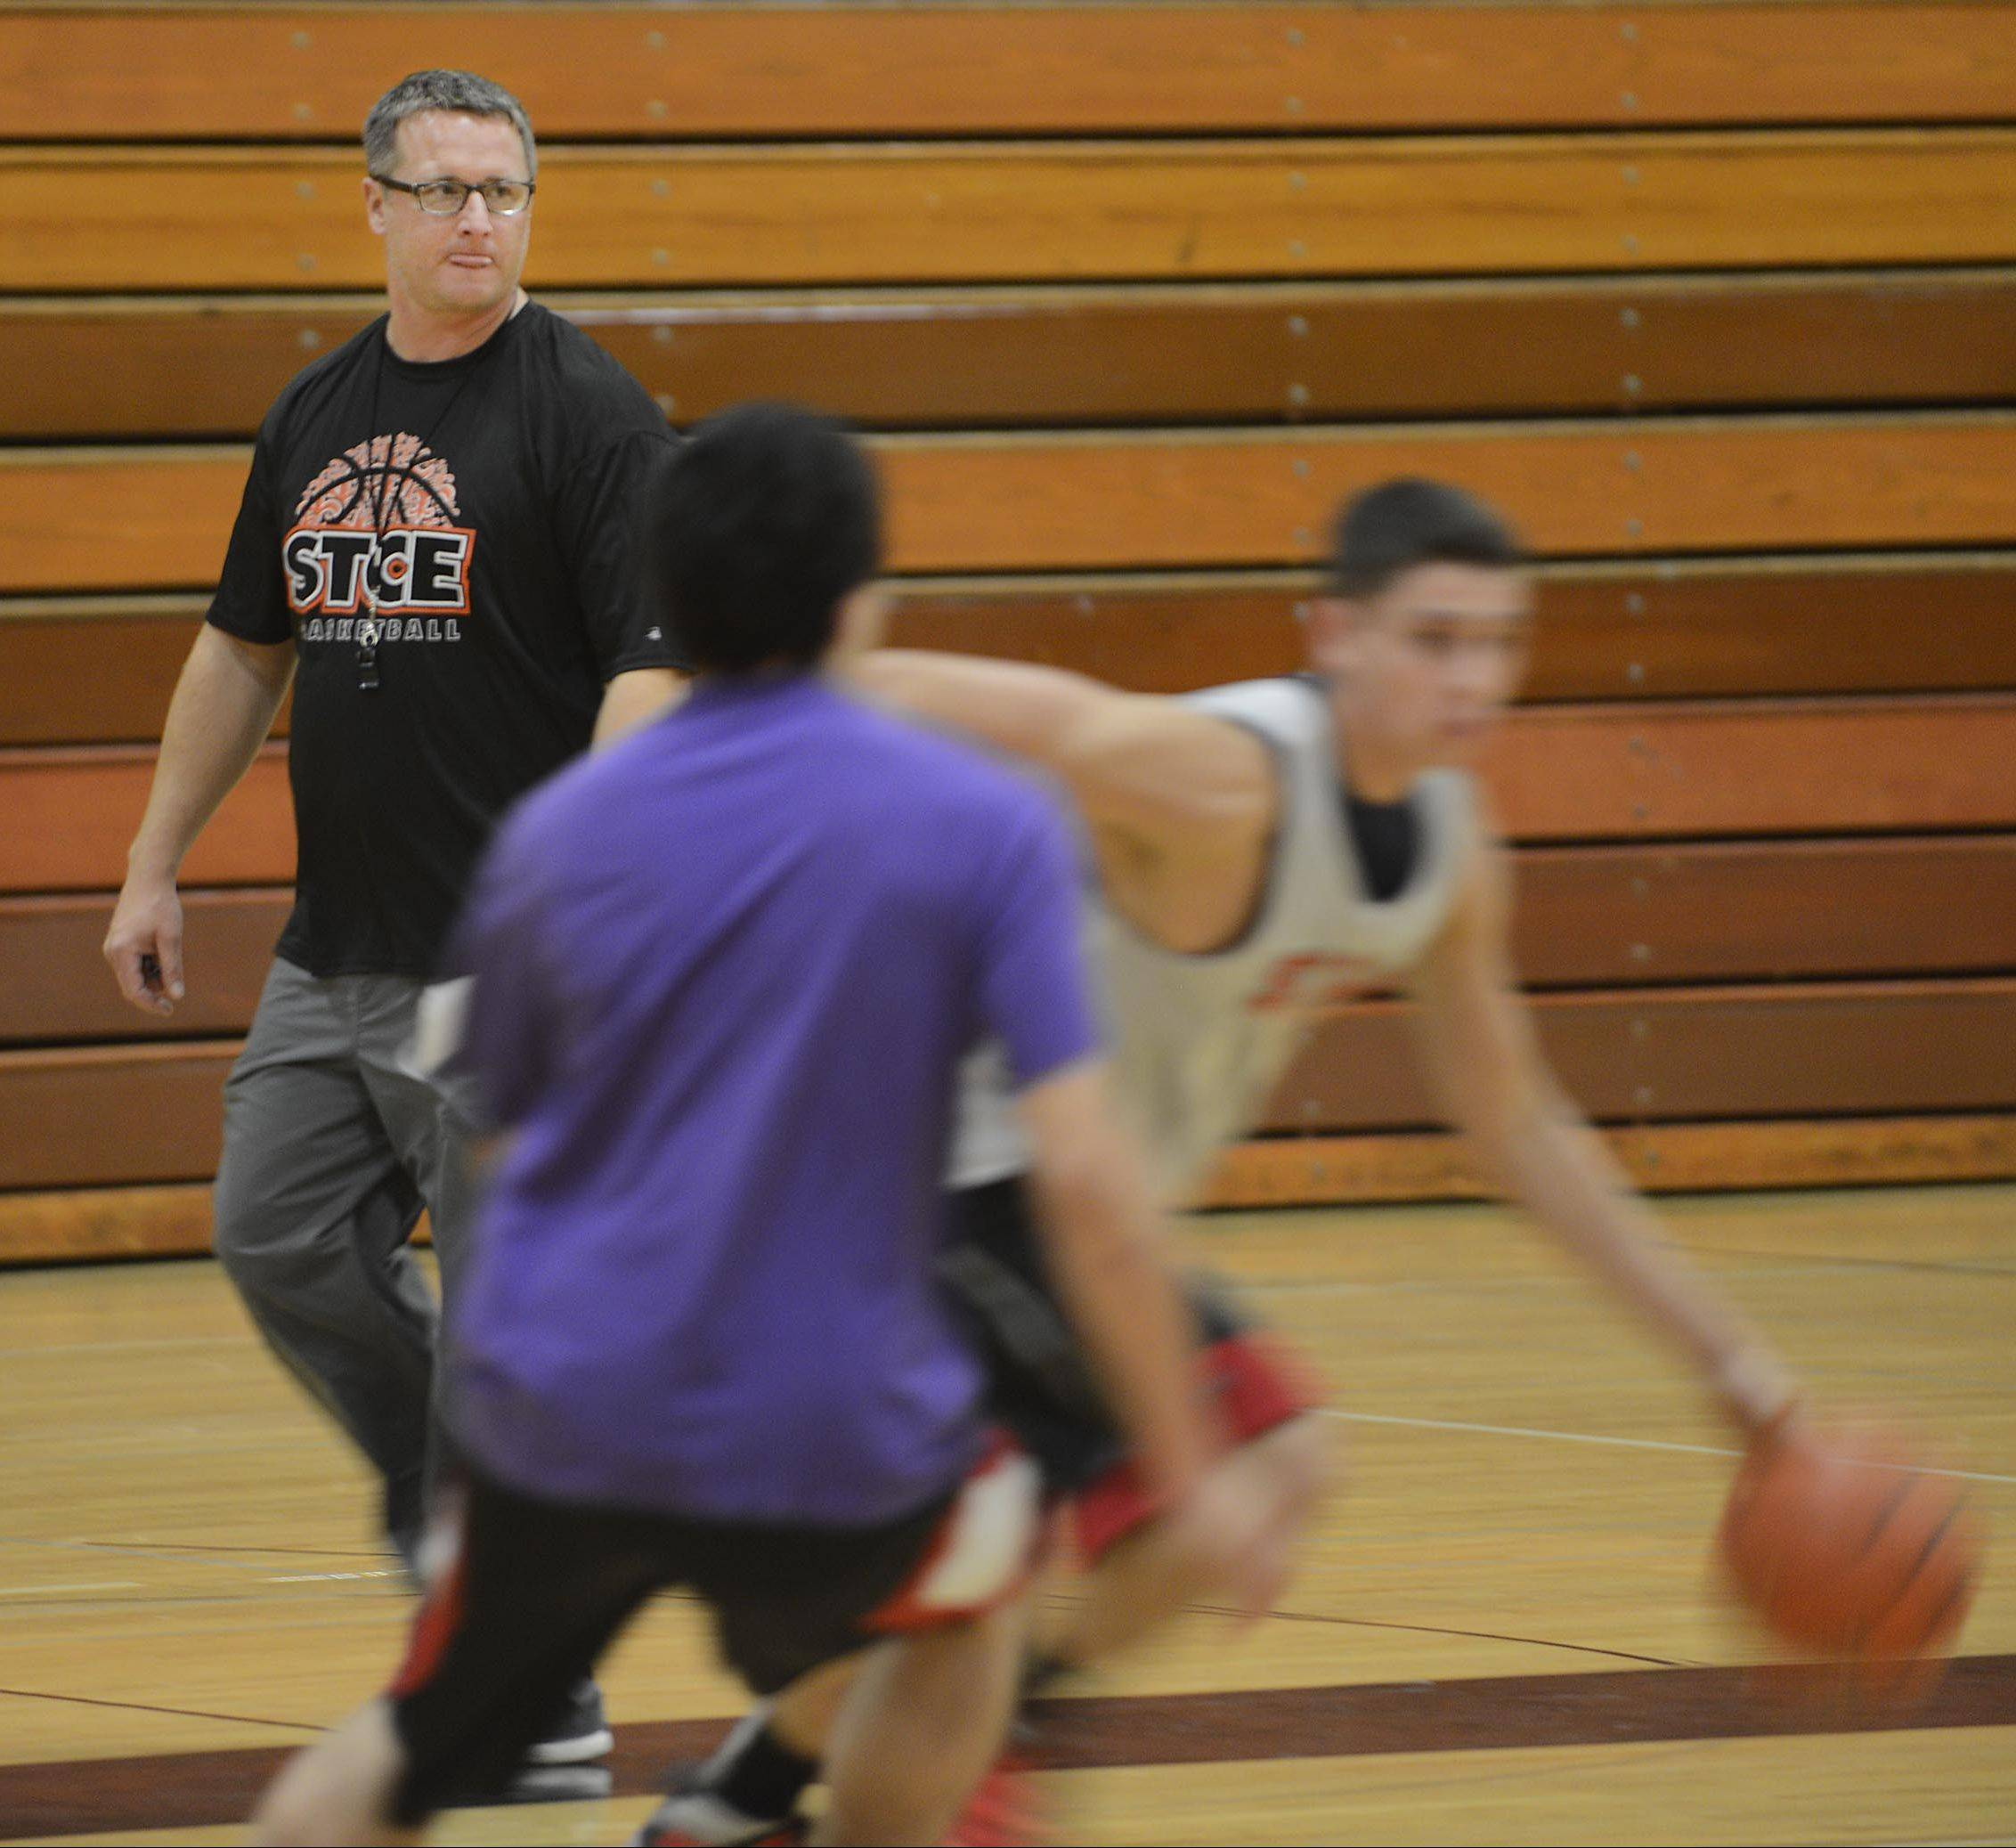 St. Charles East boys basketball coach Patrick Woods watches his players during the first day of practice Monday.